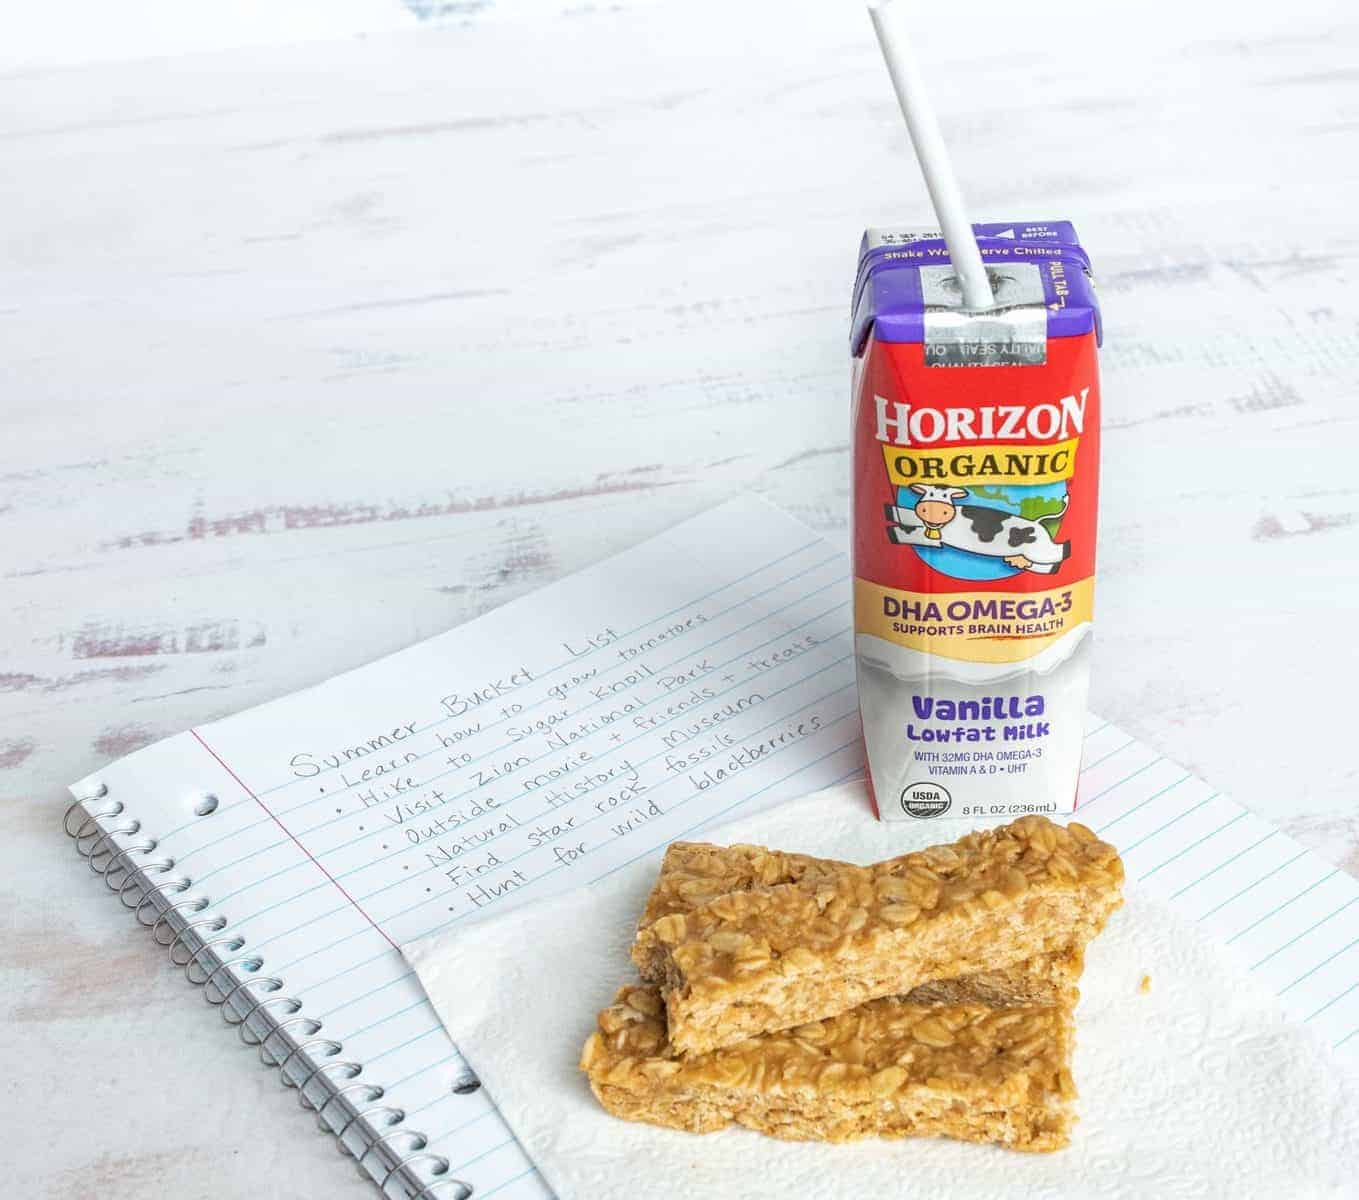 My easy homemade Granola Bars are an easy snack for on-the-go adventures, and pair perfectly with delicious Horizon Organic DHA Omega-3 milk boxes!